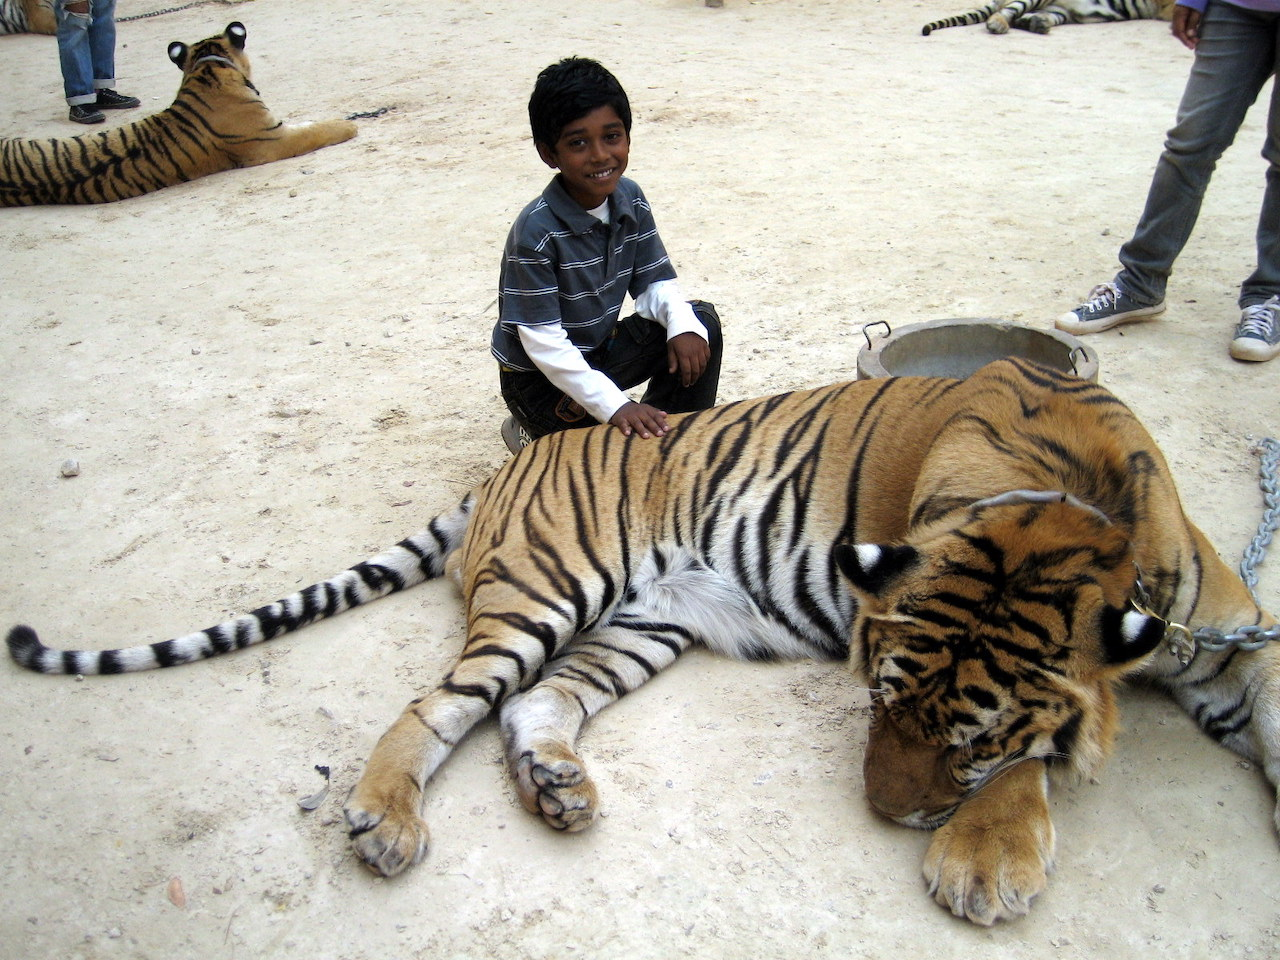 Young kid with the Tiger in Thailand